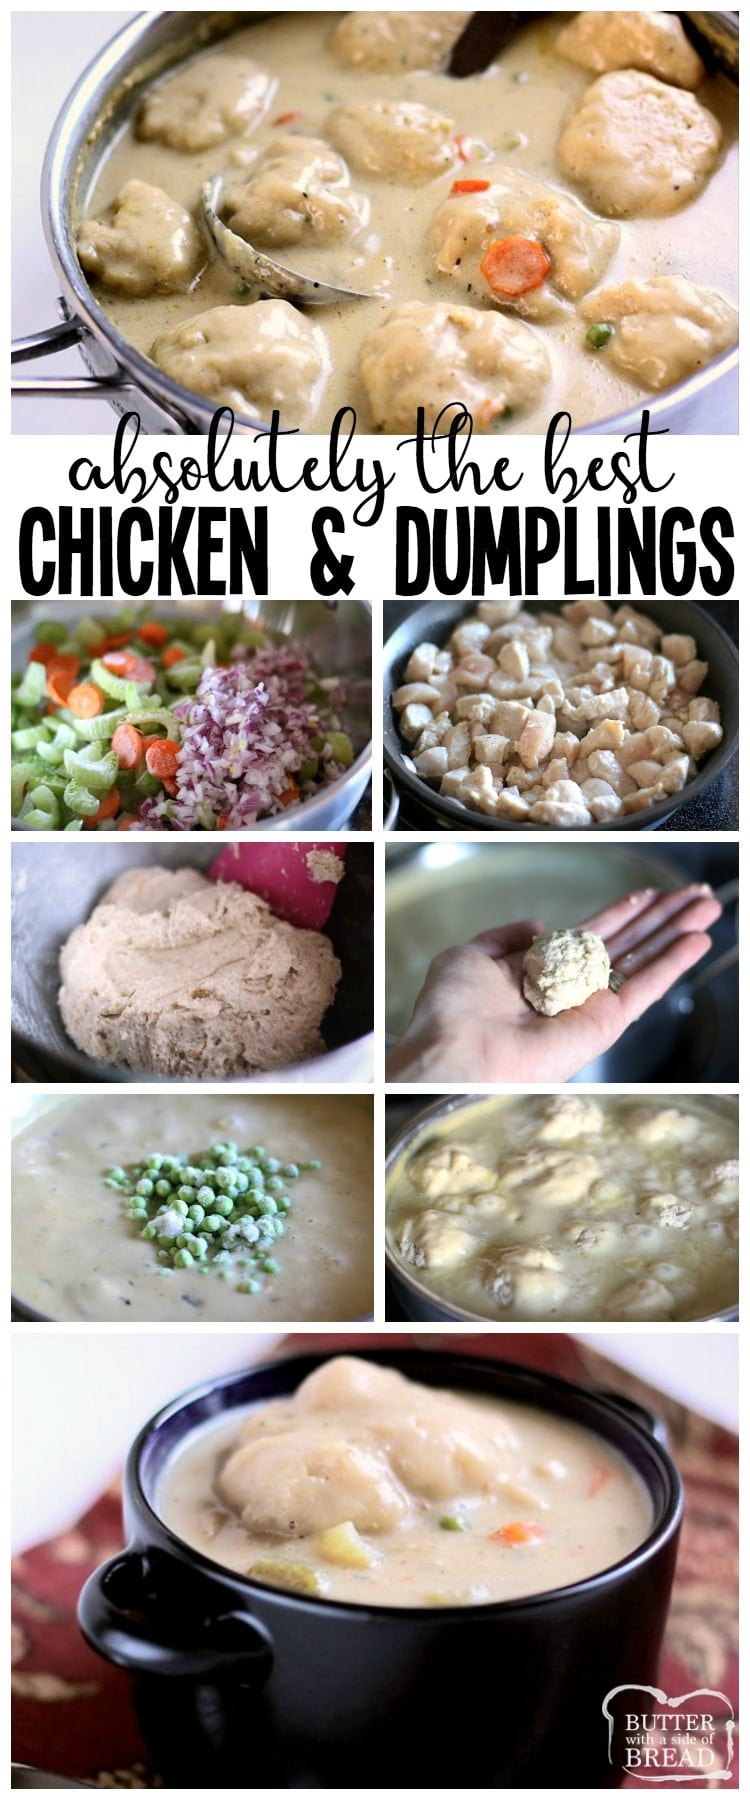 recipe: what is a good accompaniment to chicken and dumplings [25]